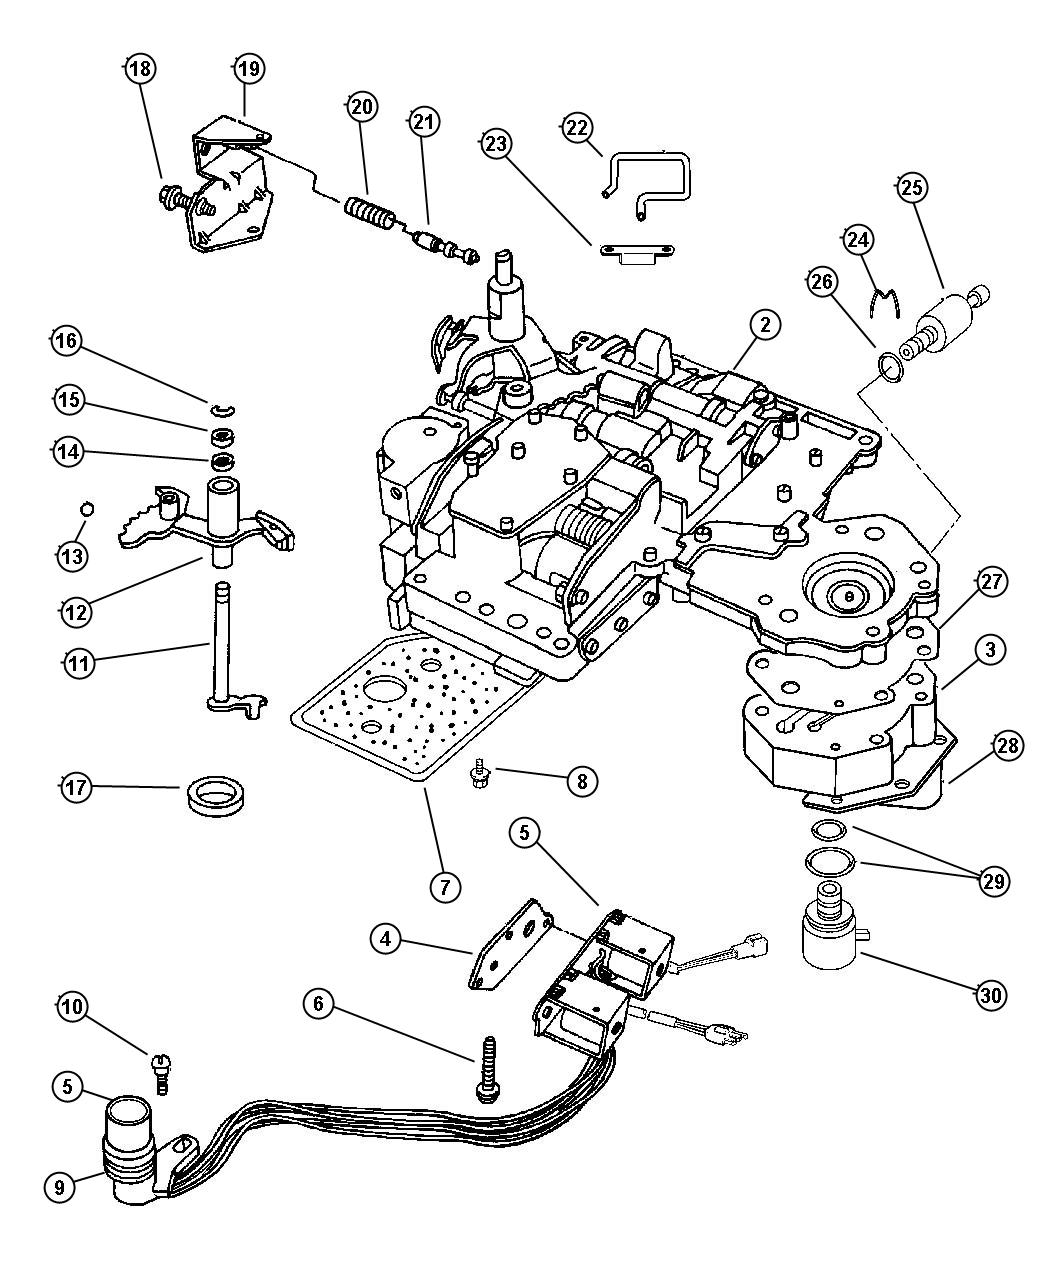 hight resolution of dodge 46re wiring diagram wiring diagrams dodge ram 46re transmission diagrams 46re wiring diagram wiring diagram